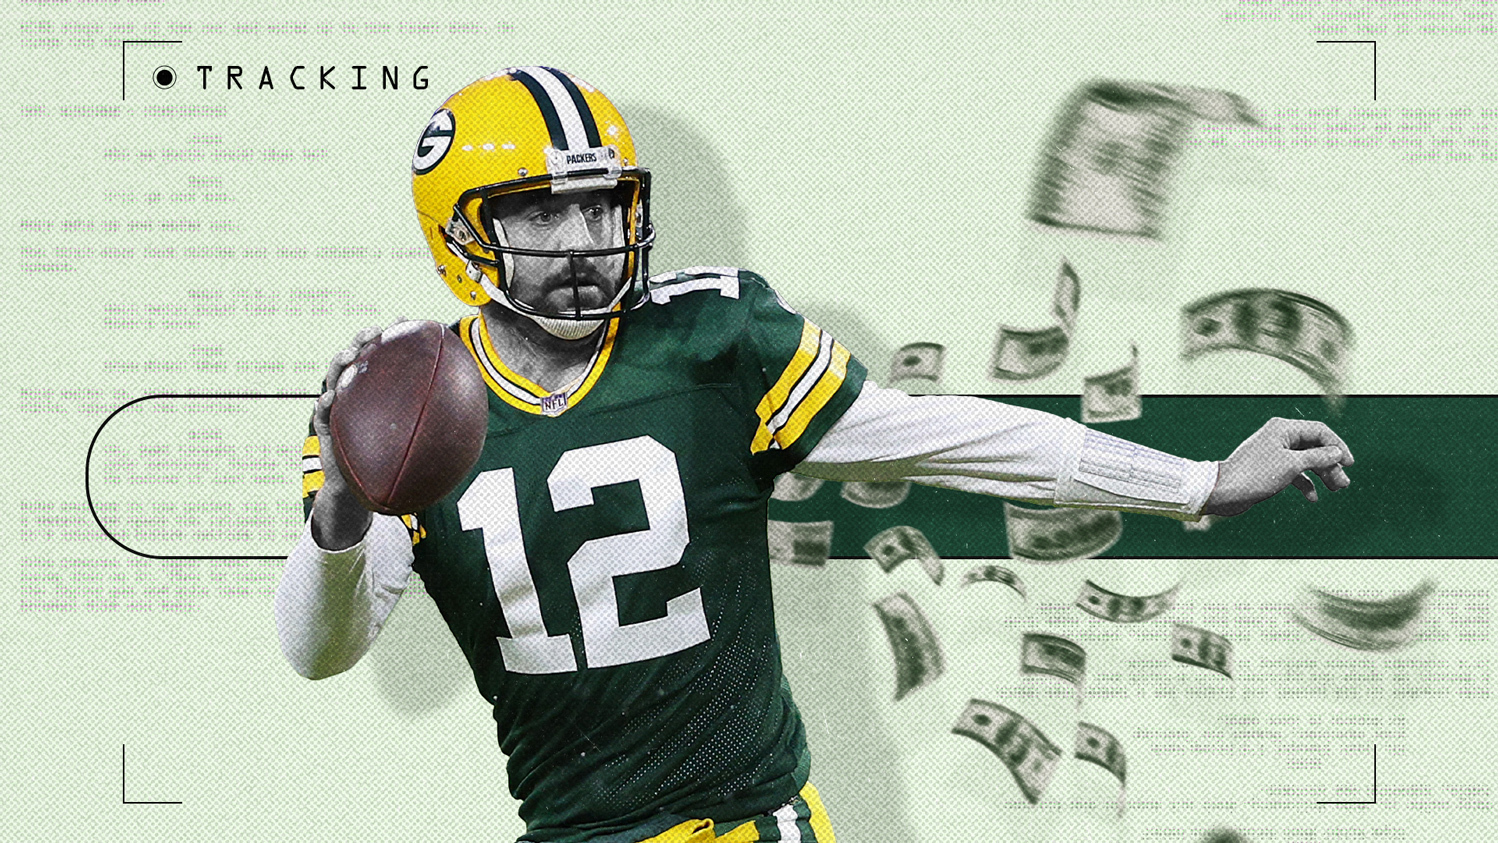 Aaron Rodgers latest: Record-setting extension from Green Bay Packers turned down?